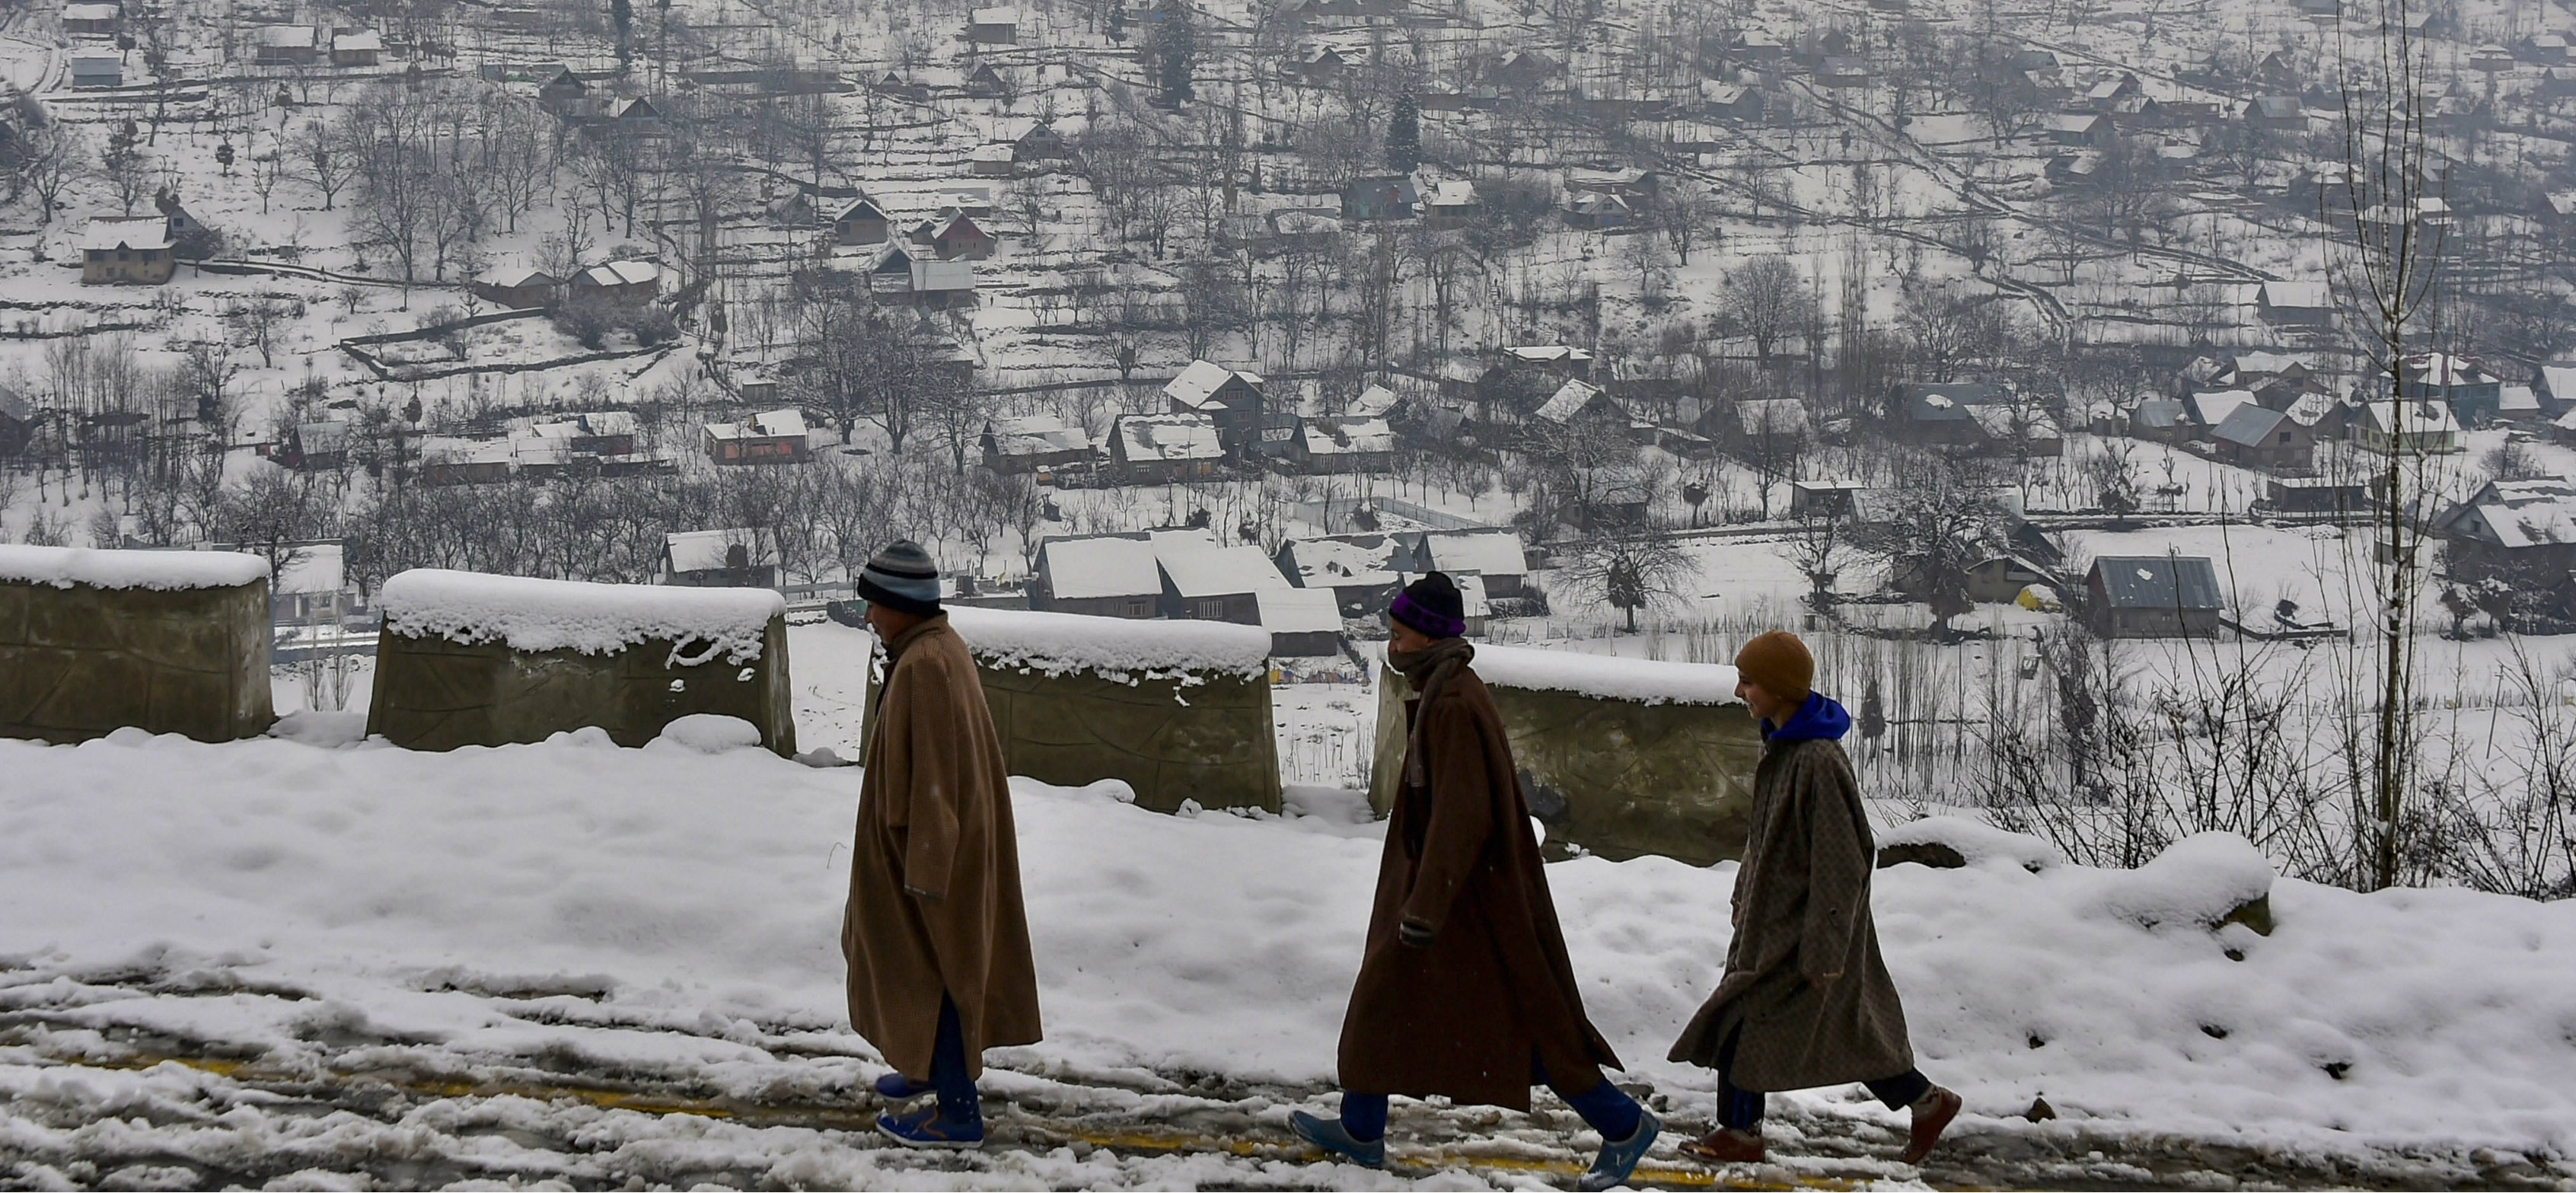 On Wednesday, Kashmir received its first snowfall of the New Year, breaking a month-long dry spell.